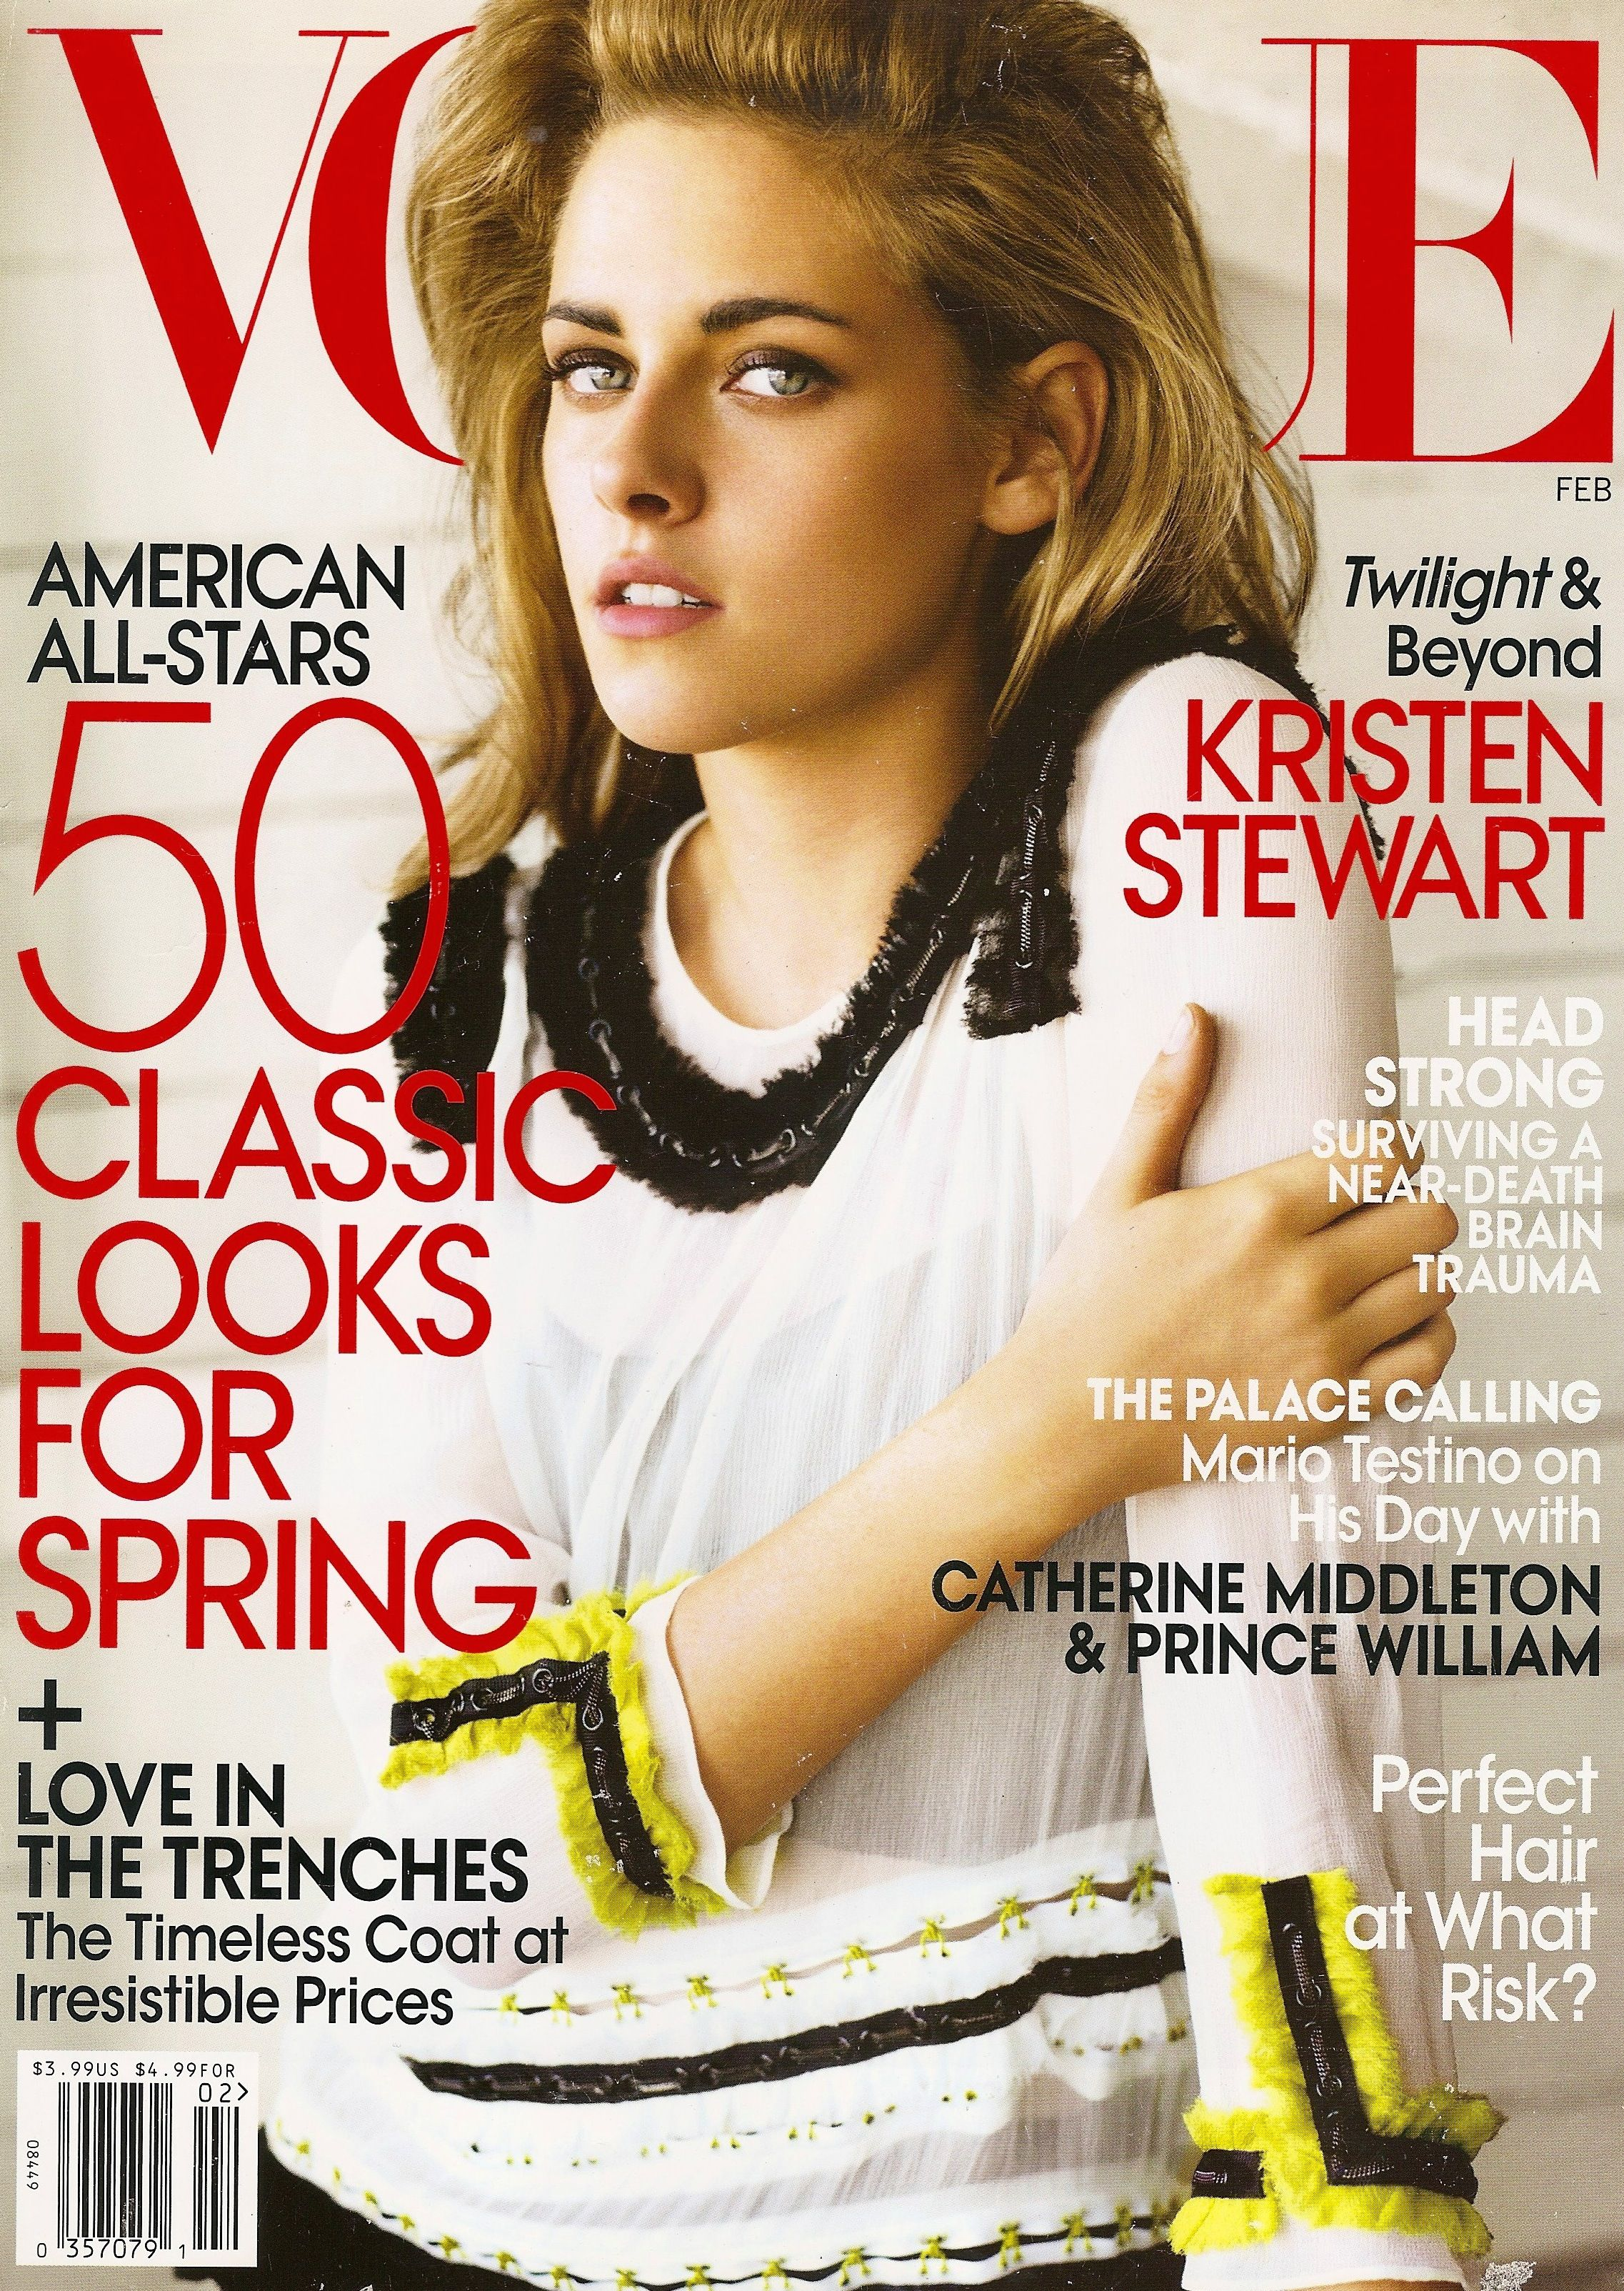 6fda2dce0342f Vogue Coverl   Vogue Magazine   Kristen Stewart   Magazine Cover   Fashion  Editorial   Fashion   fashion photography   photography